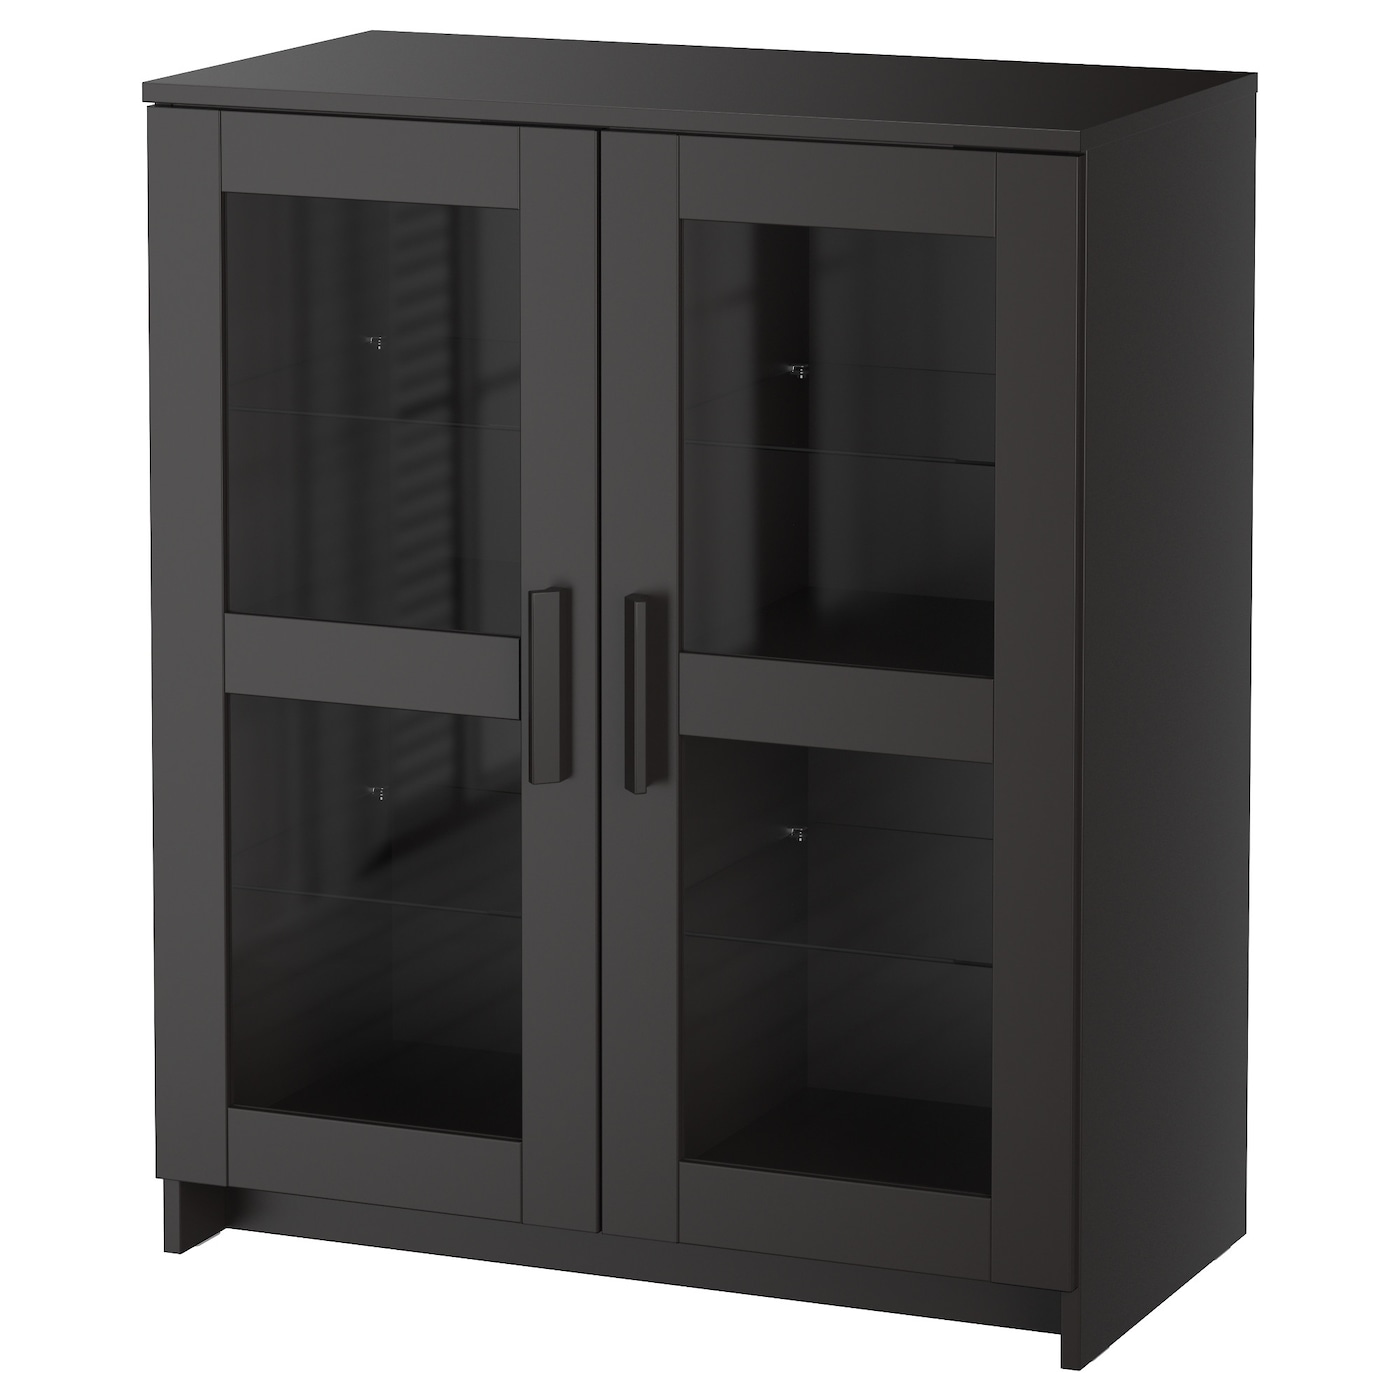 storage cabinets storage cupboards ikea. Black Bedroom Furniture Sets. Home Design Ideas